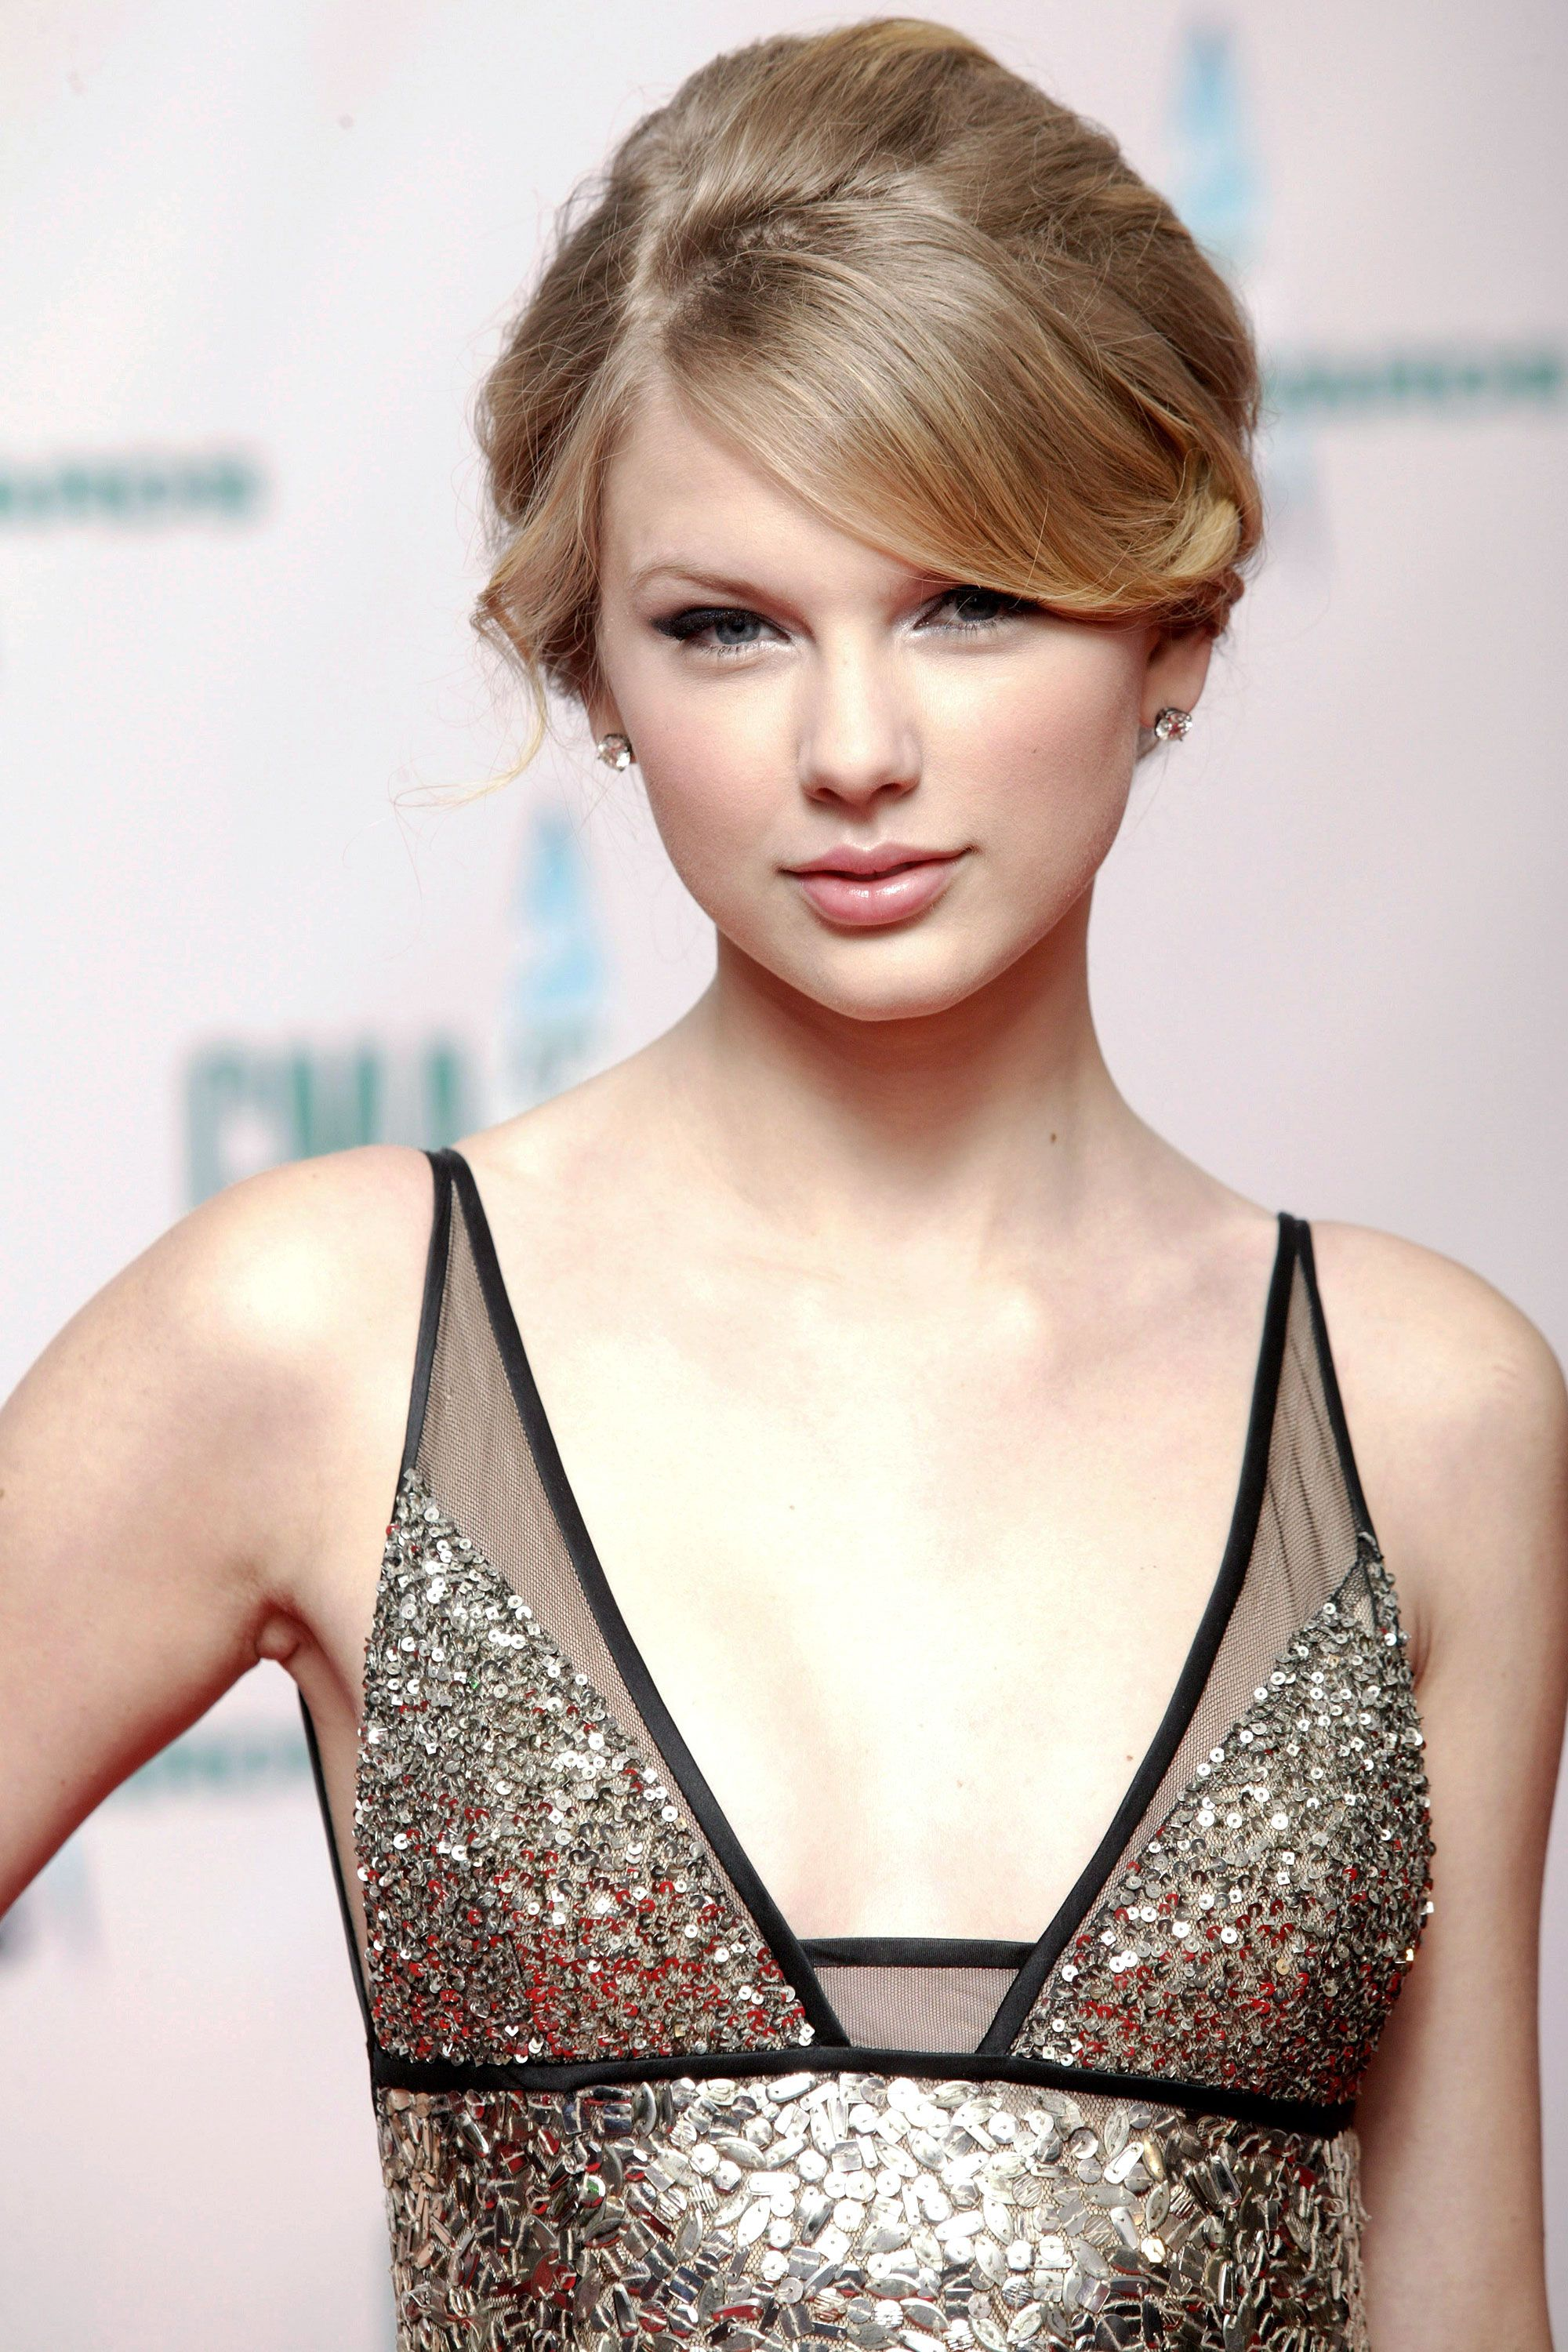 Taylor Swift Hairstyles   Taylor Swiftu0027s Curly, Straight, Short, Long Hair